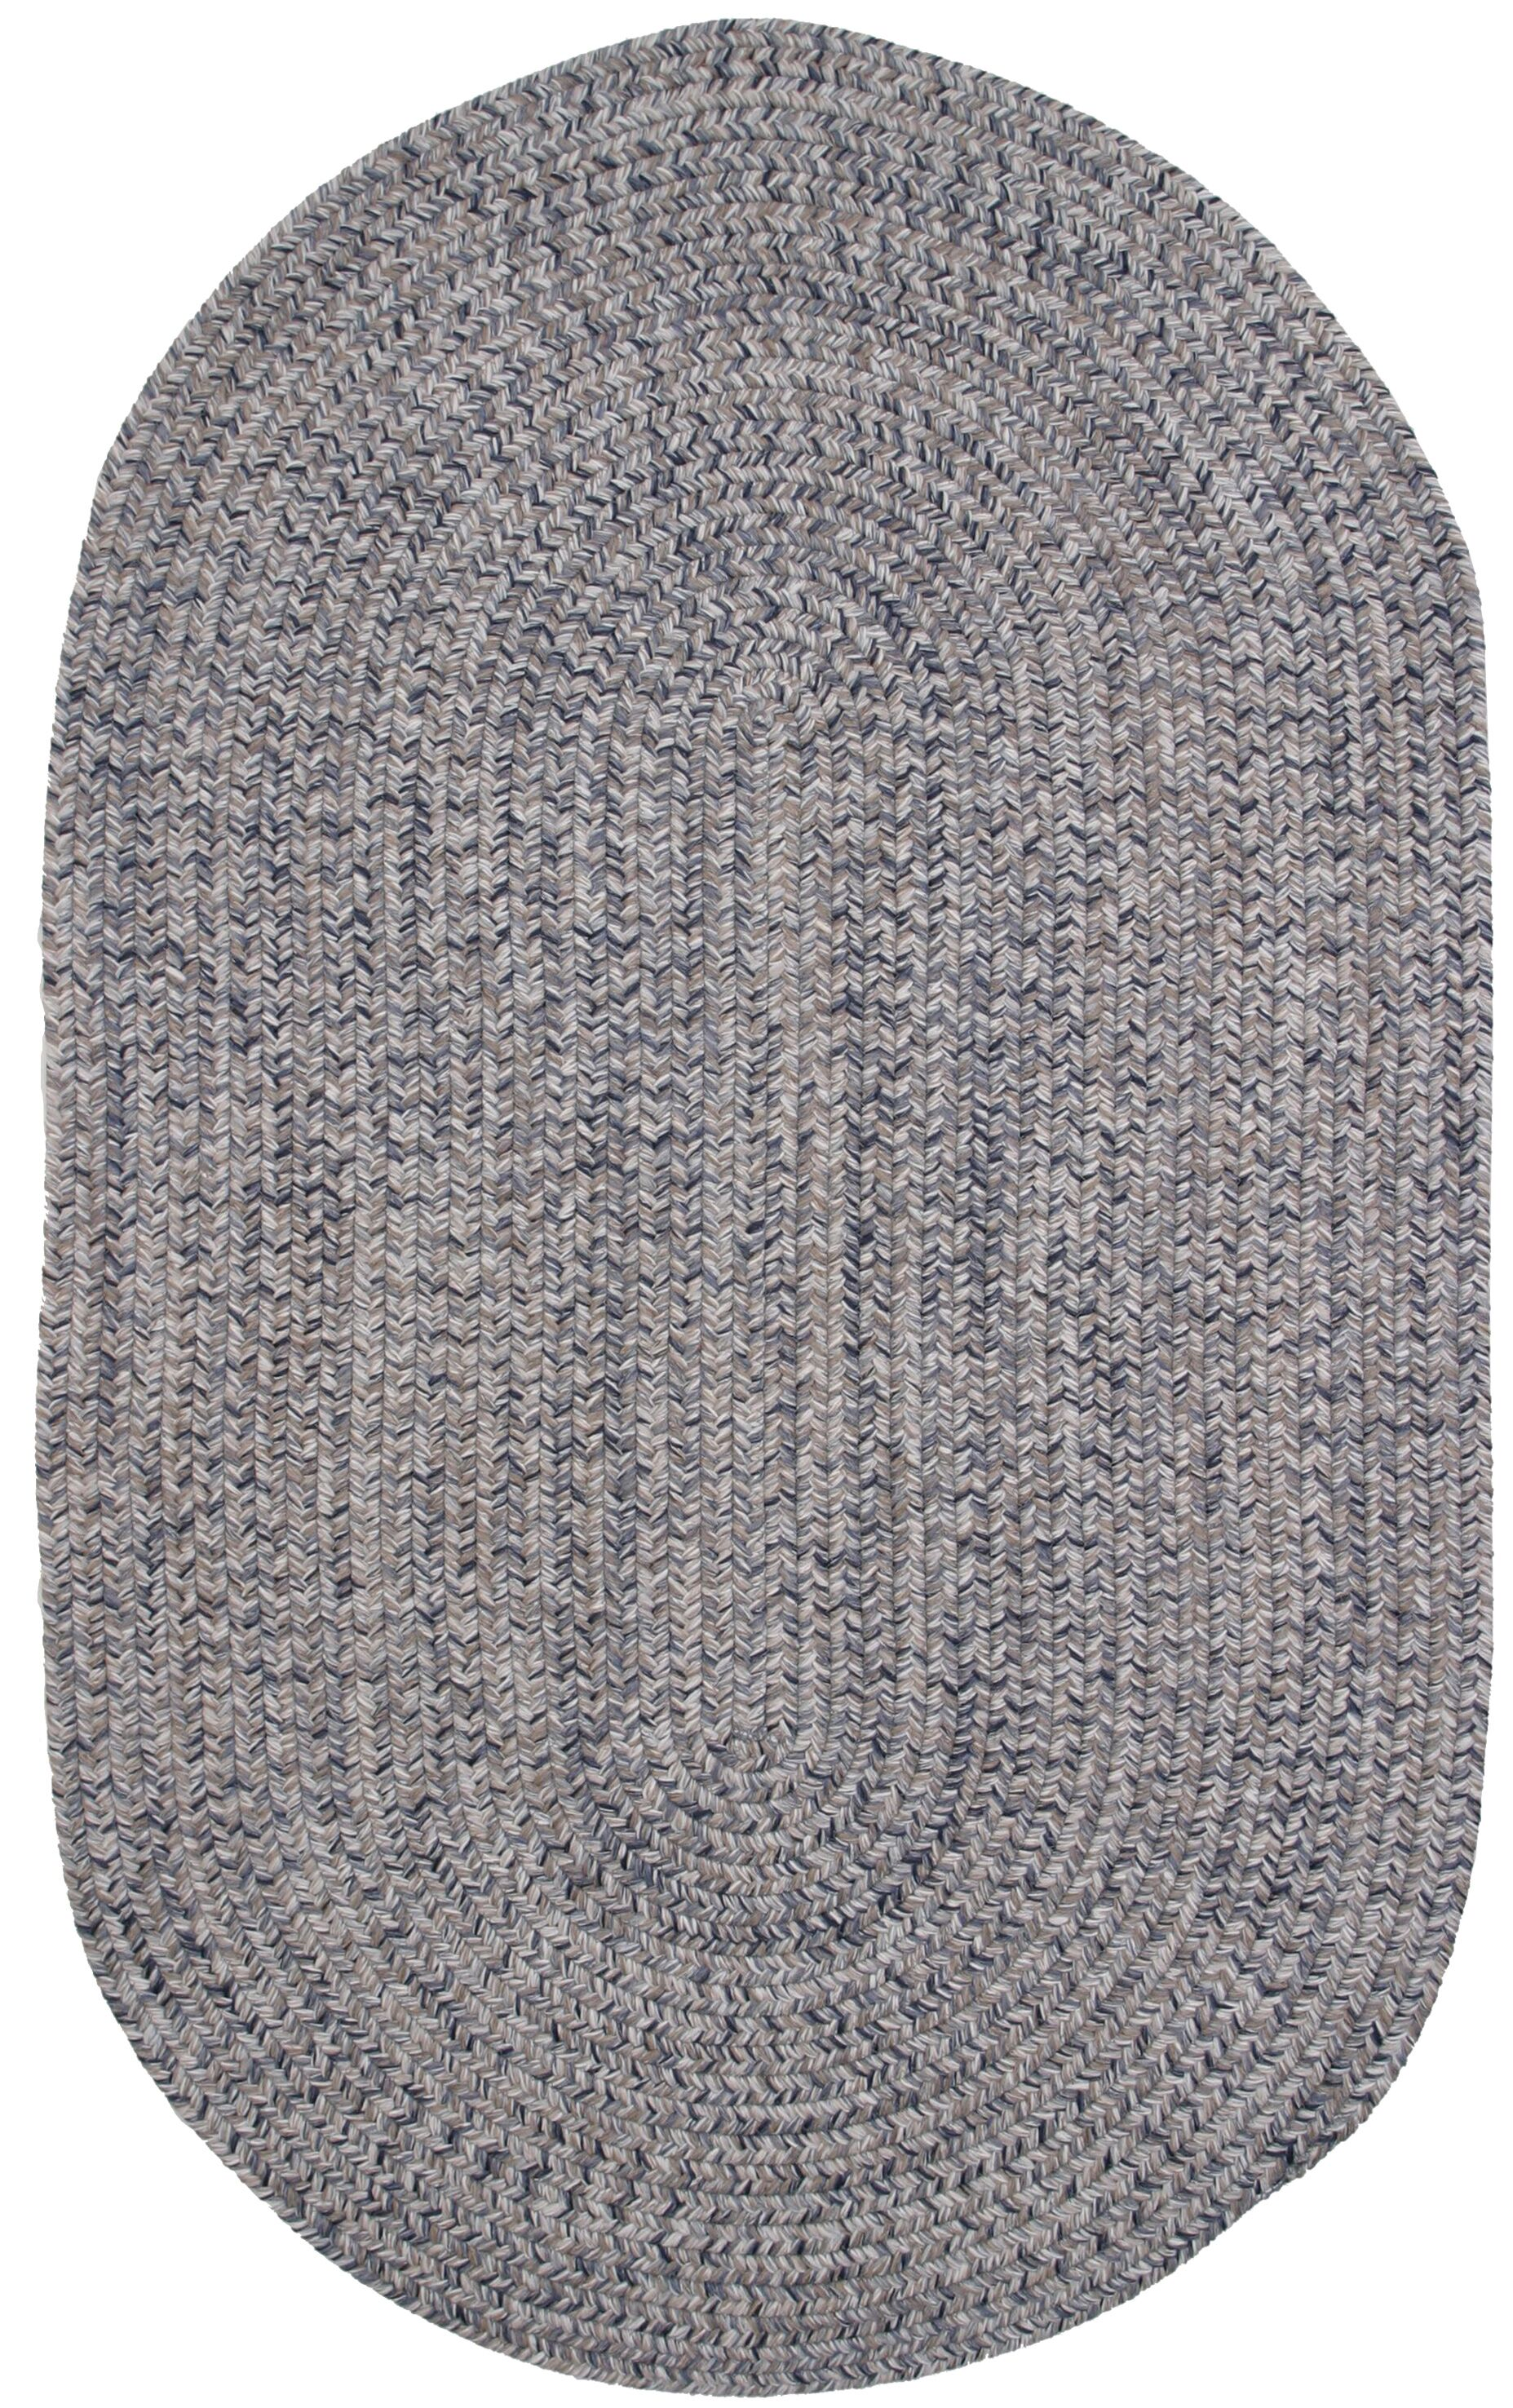 Town Crier Heather Gray Indoor/Outdoor Rug Rug Size: Oval 3' x 5'